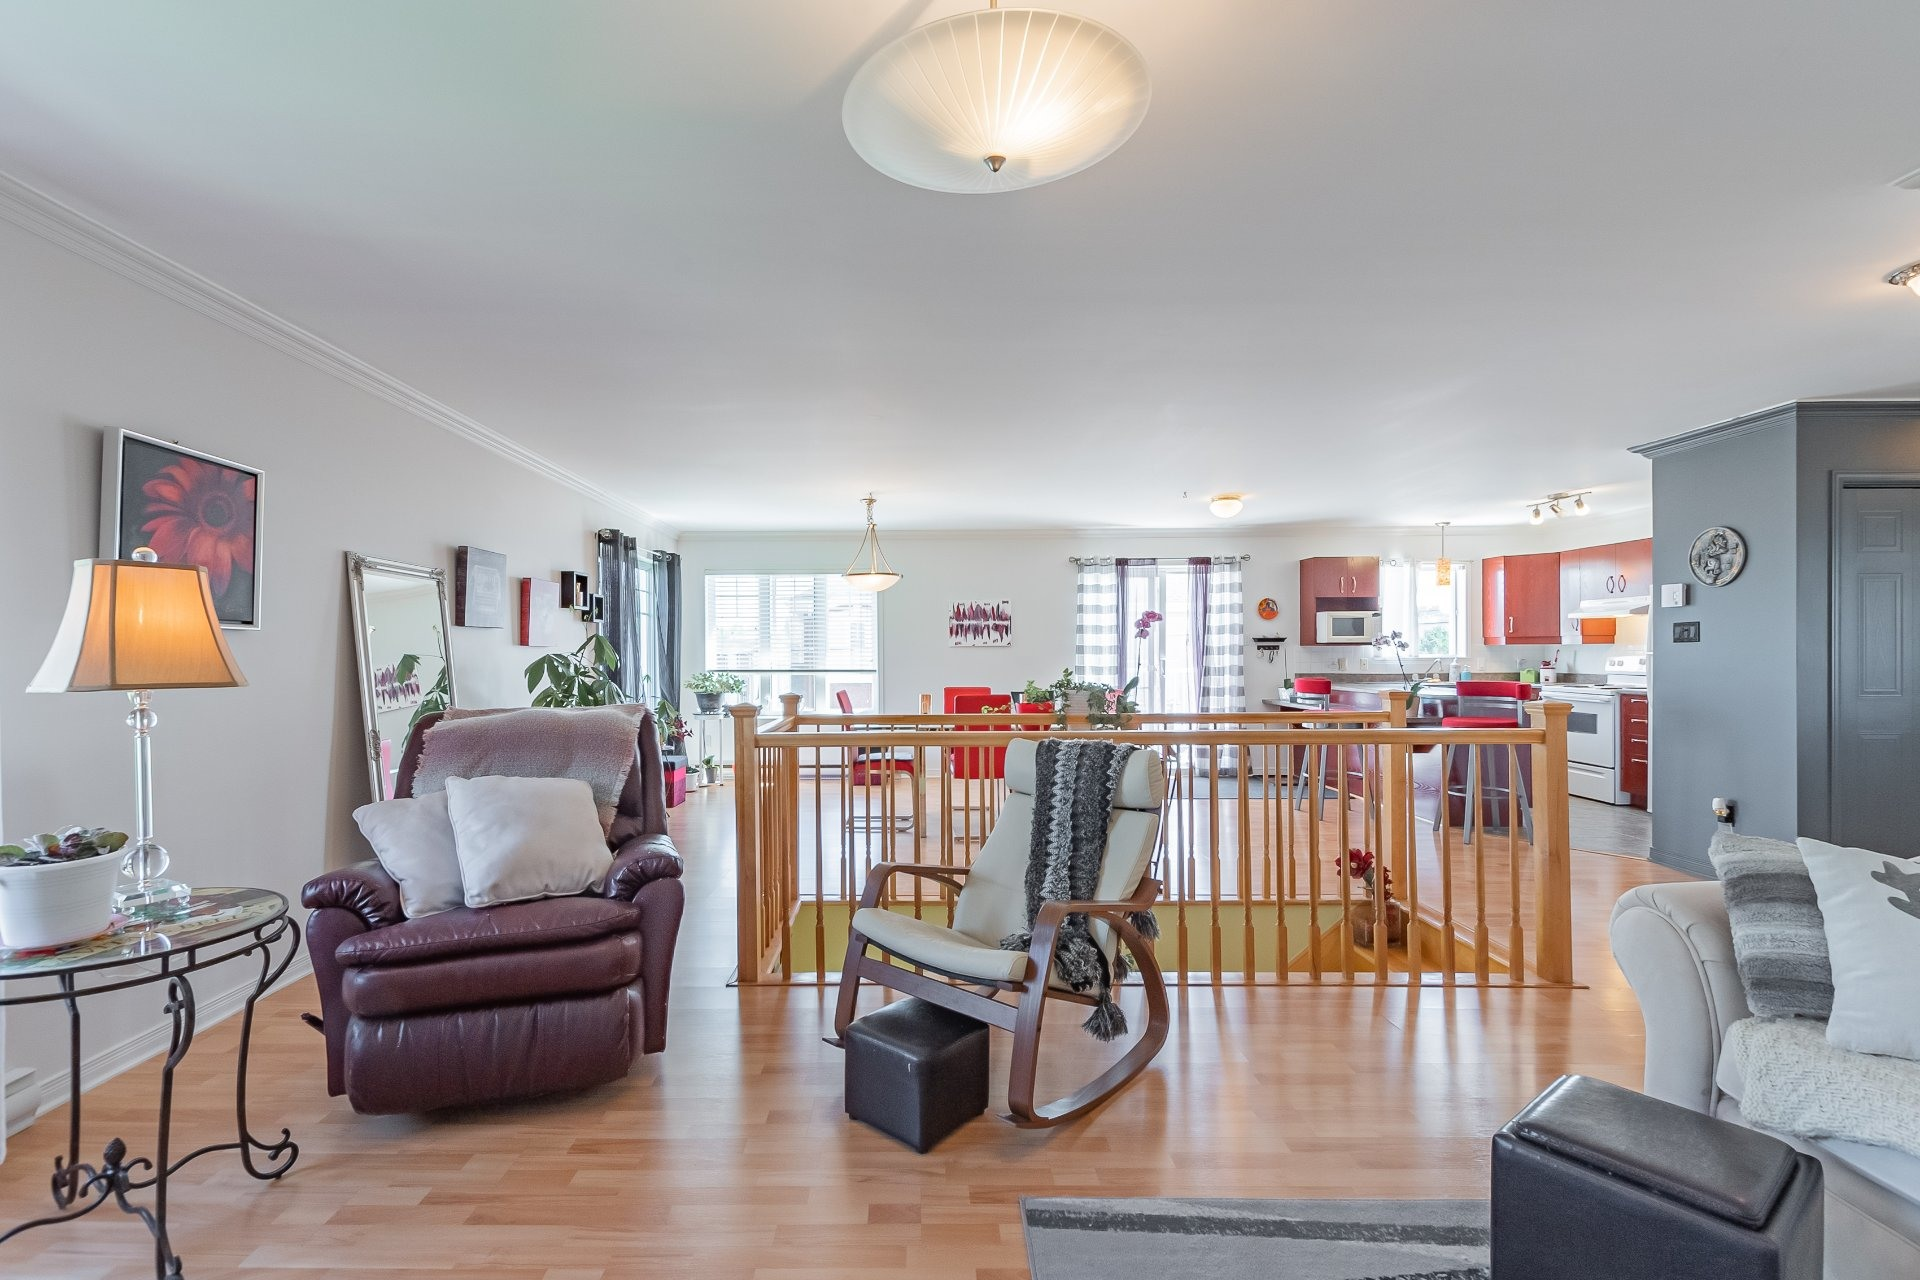 image 4 - Apartment For sale Sainte-Catherine - 5 rooms